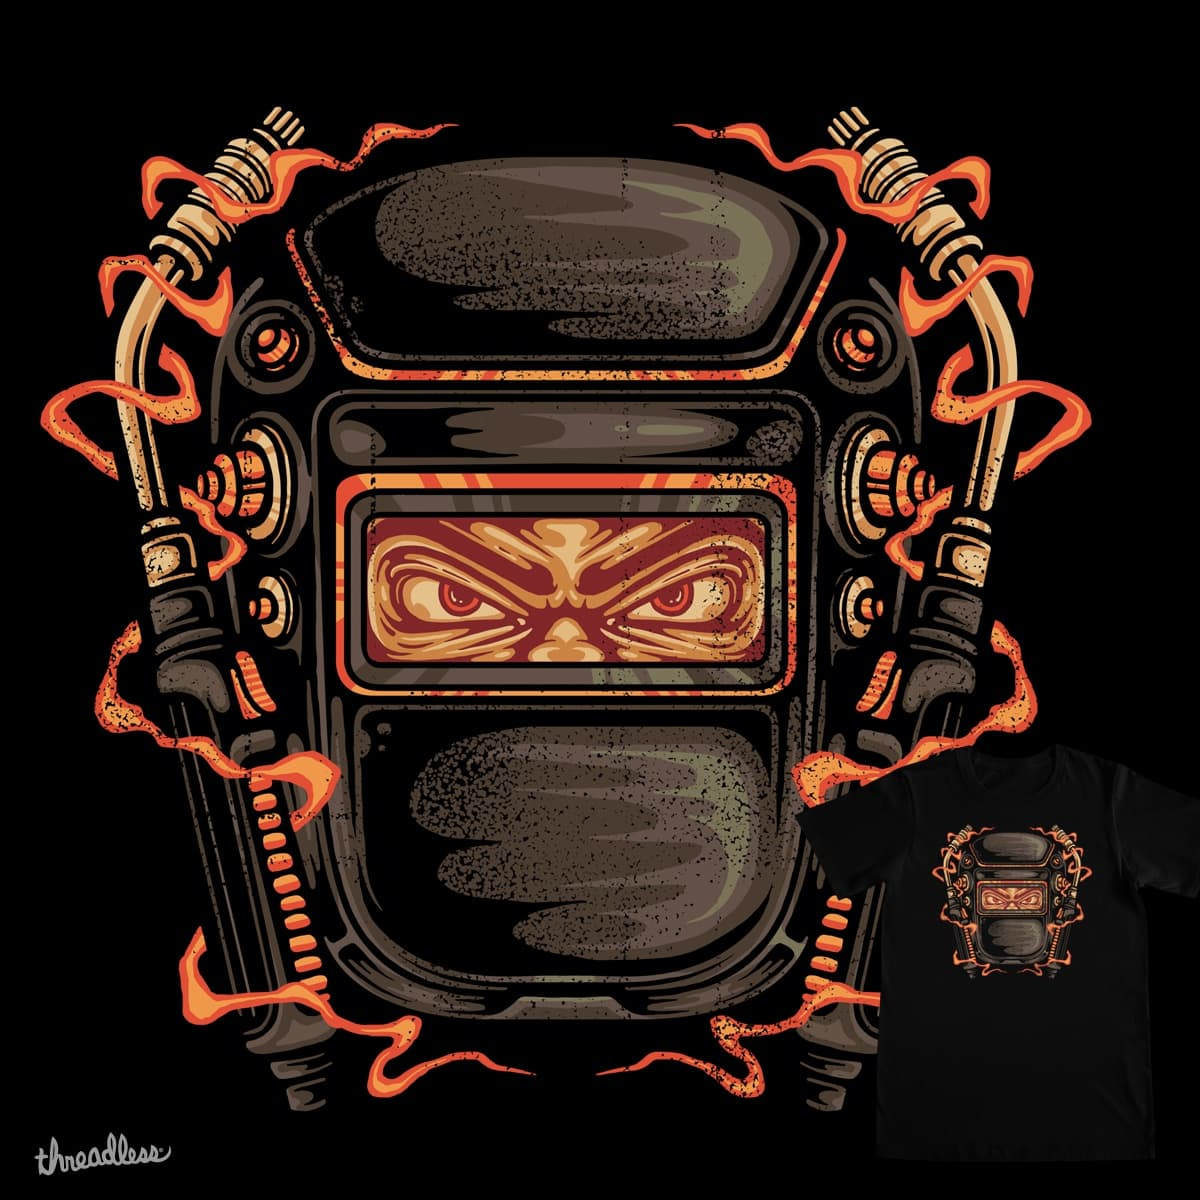 Score Weld Life by StayhoomProject on Threadless